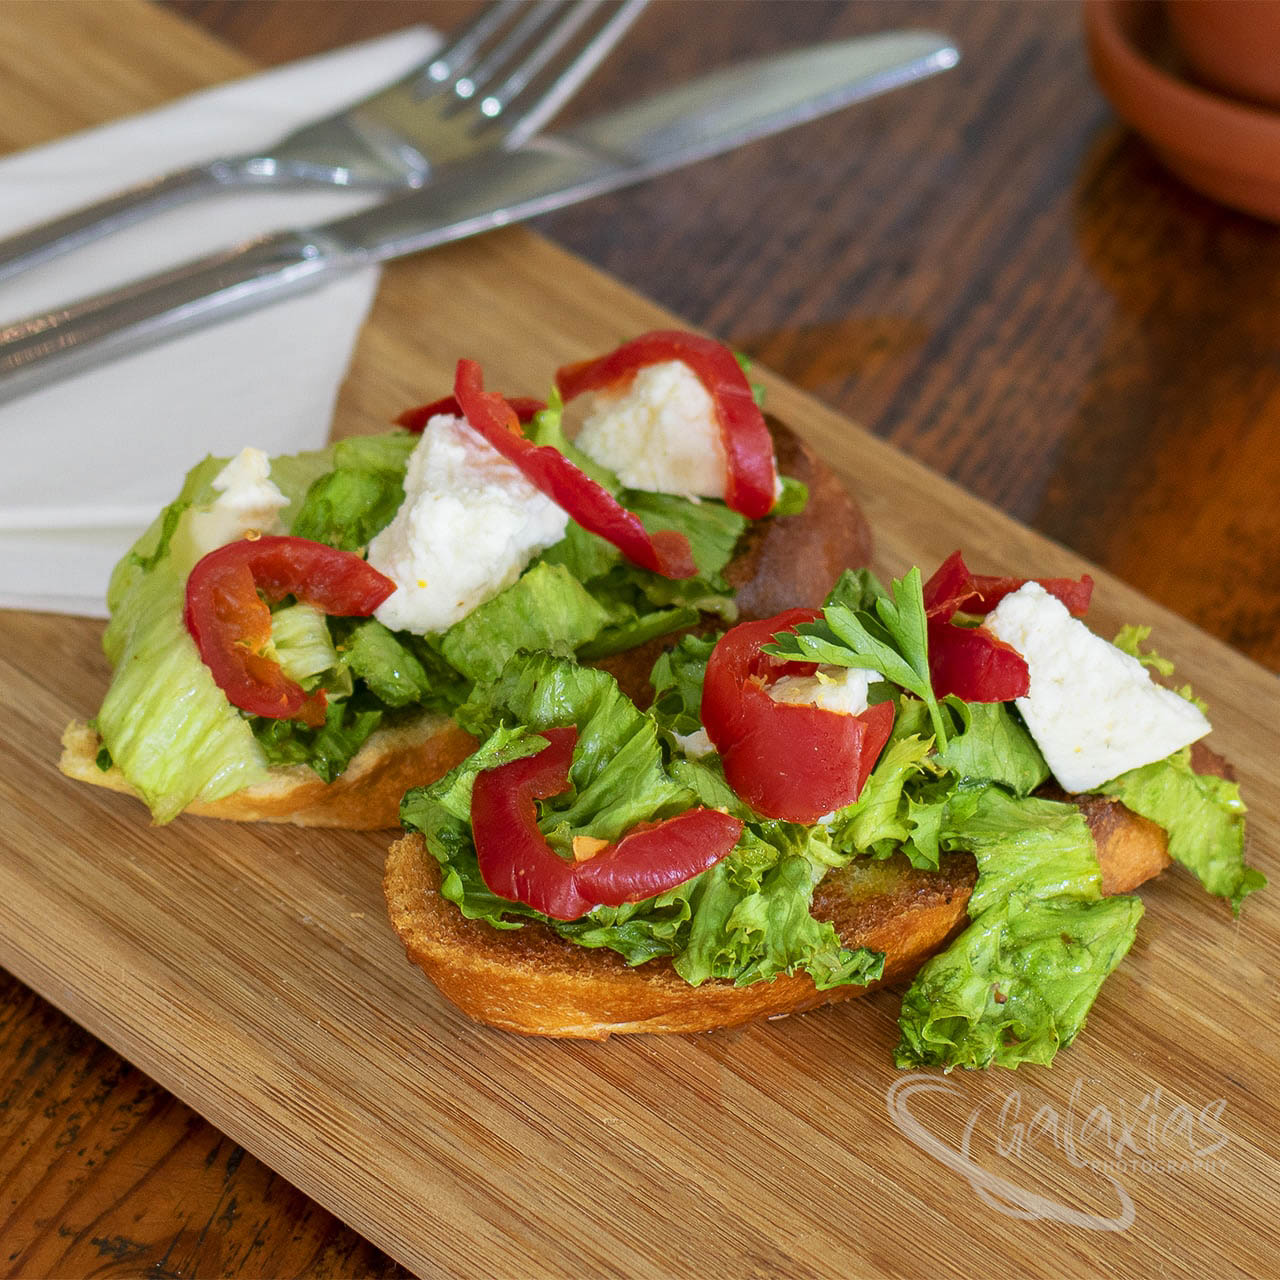 Jalapeno & Feta Toast by Galaxias Photography